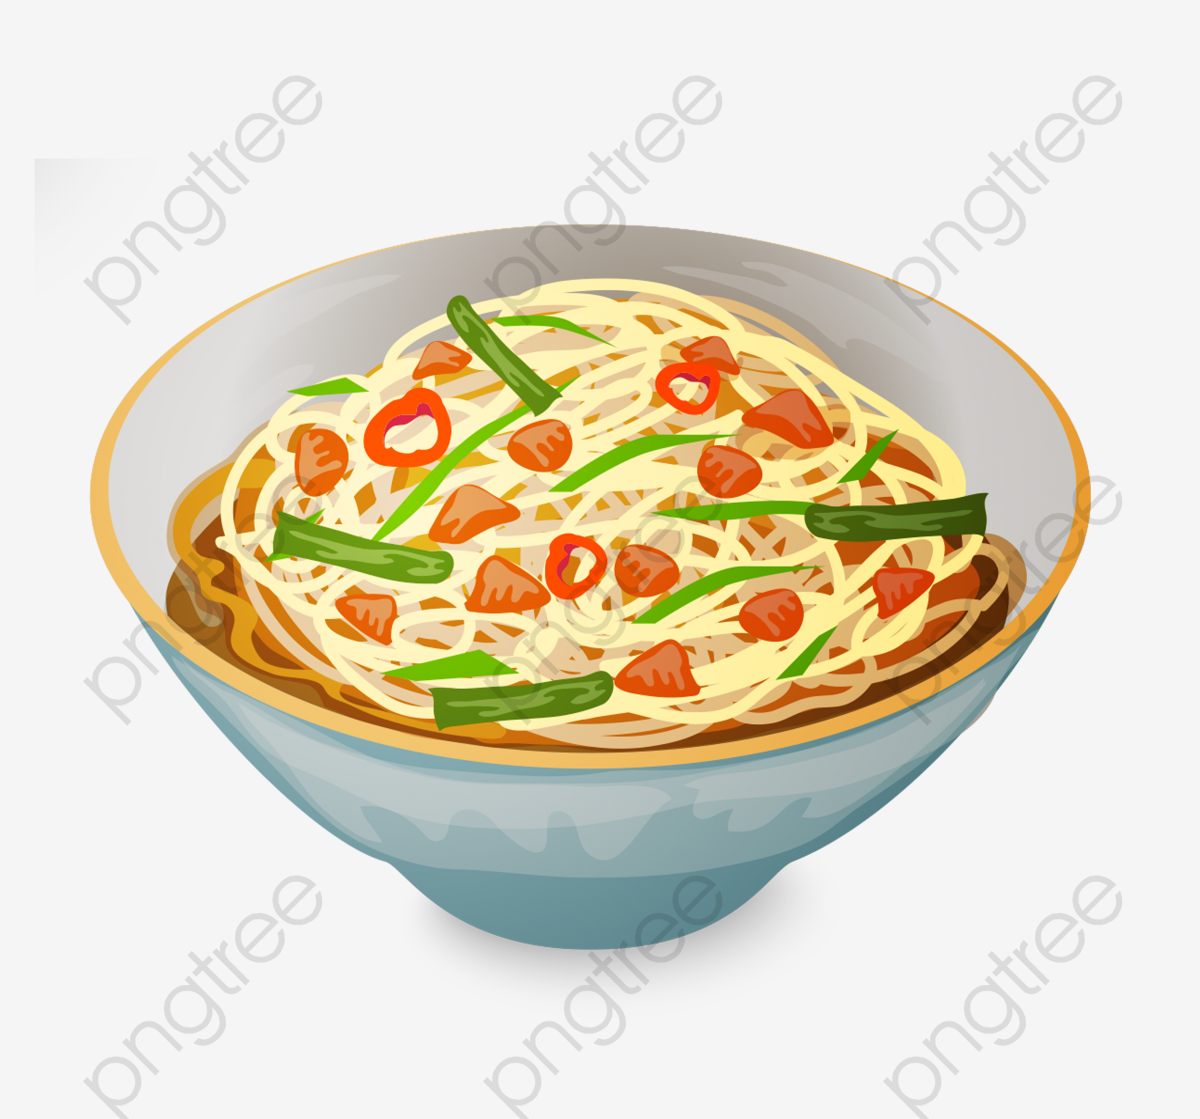 Best HD Noodle Vector Png Images » Free Vector Art, Images.